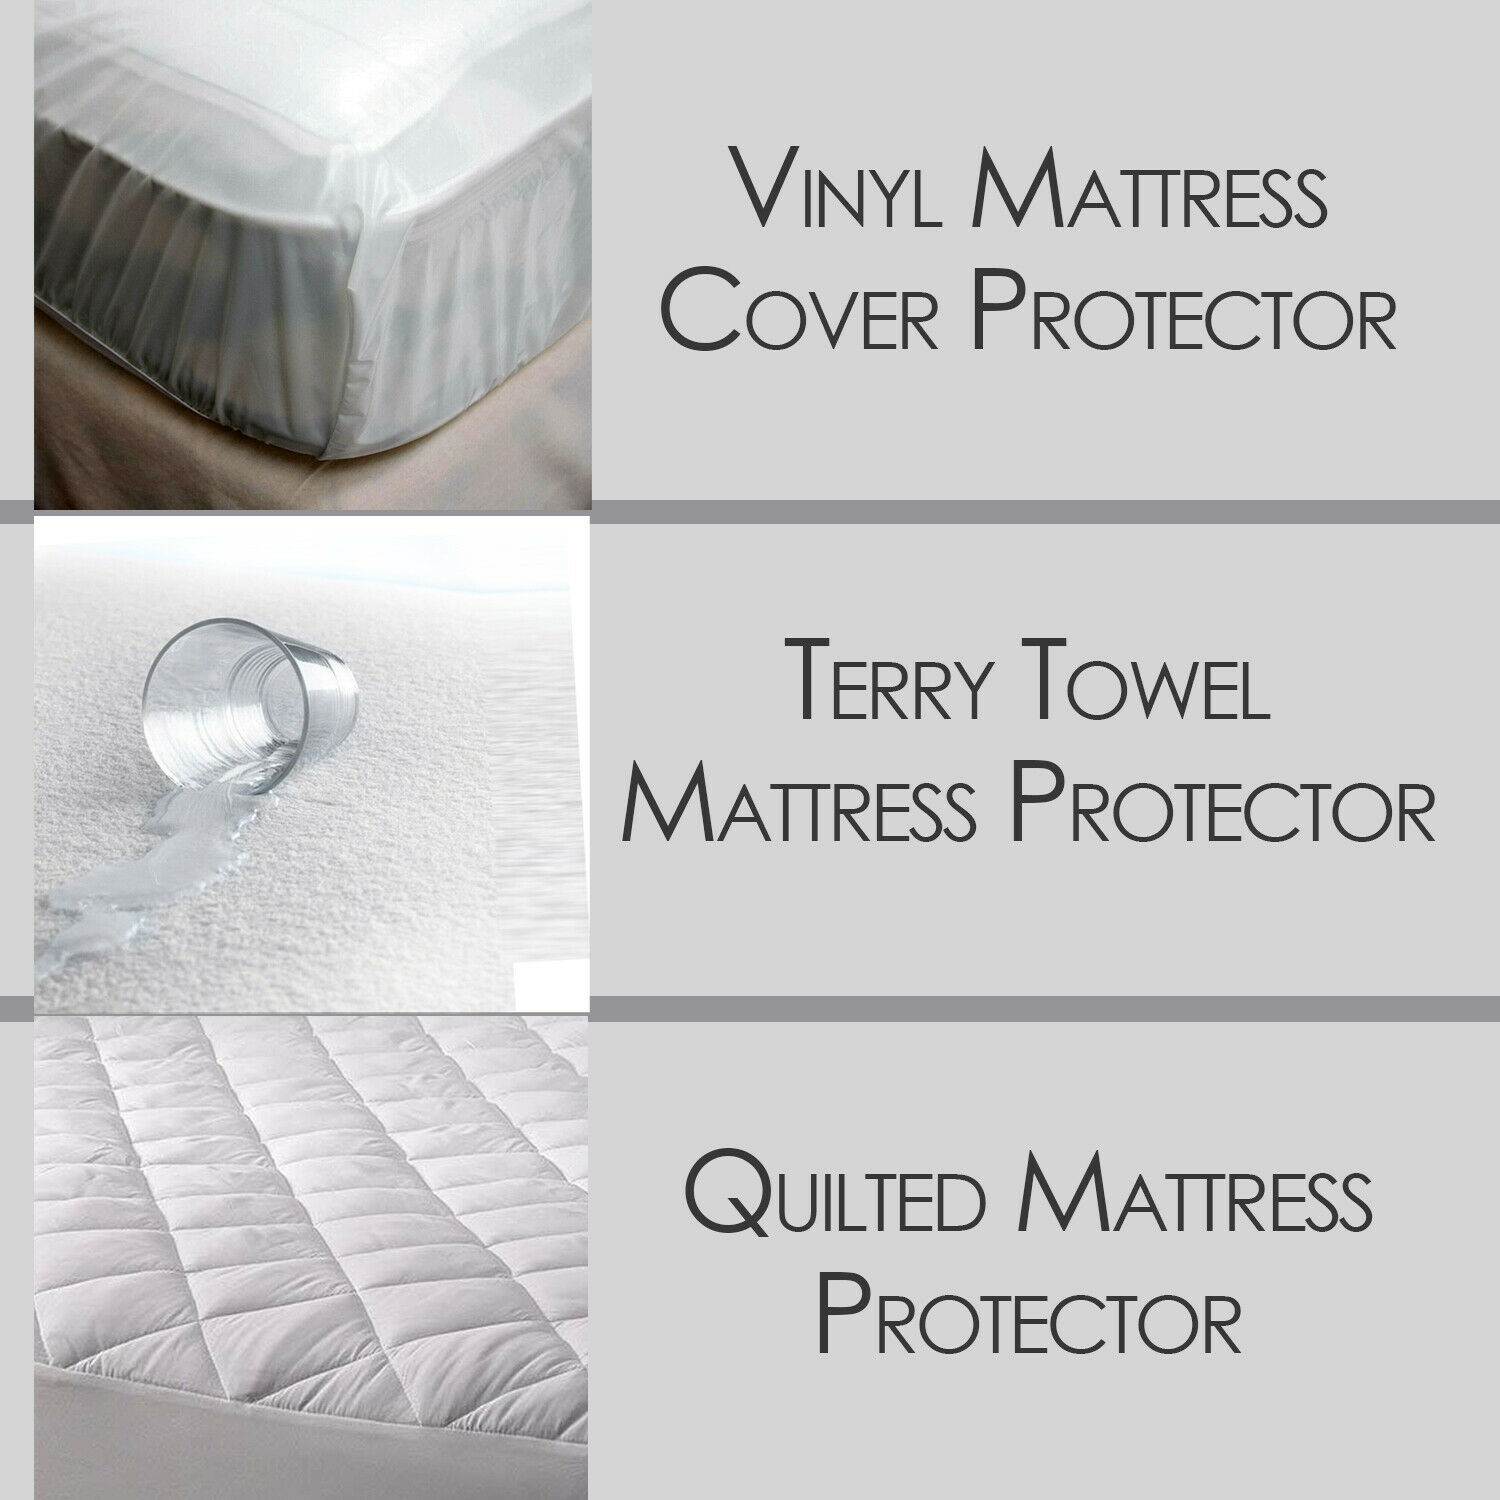 Waterproof Mattress Protector Bed Cover Quilted Terry Towel Vinyl Double All Sz Ebay